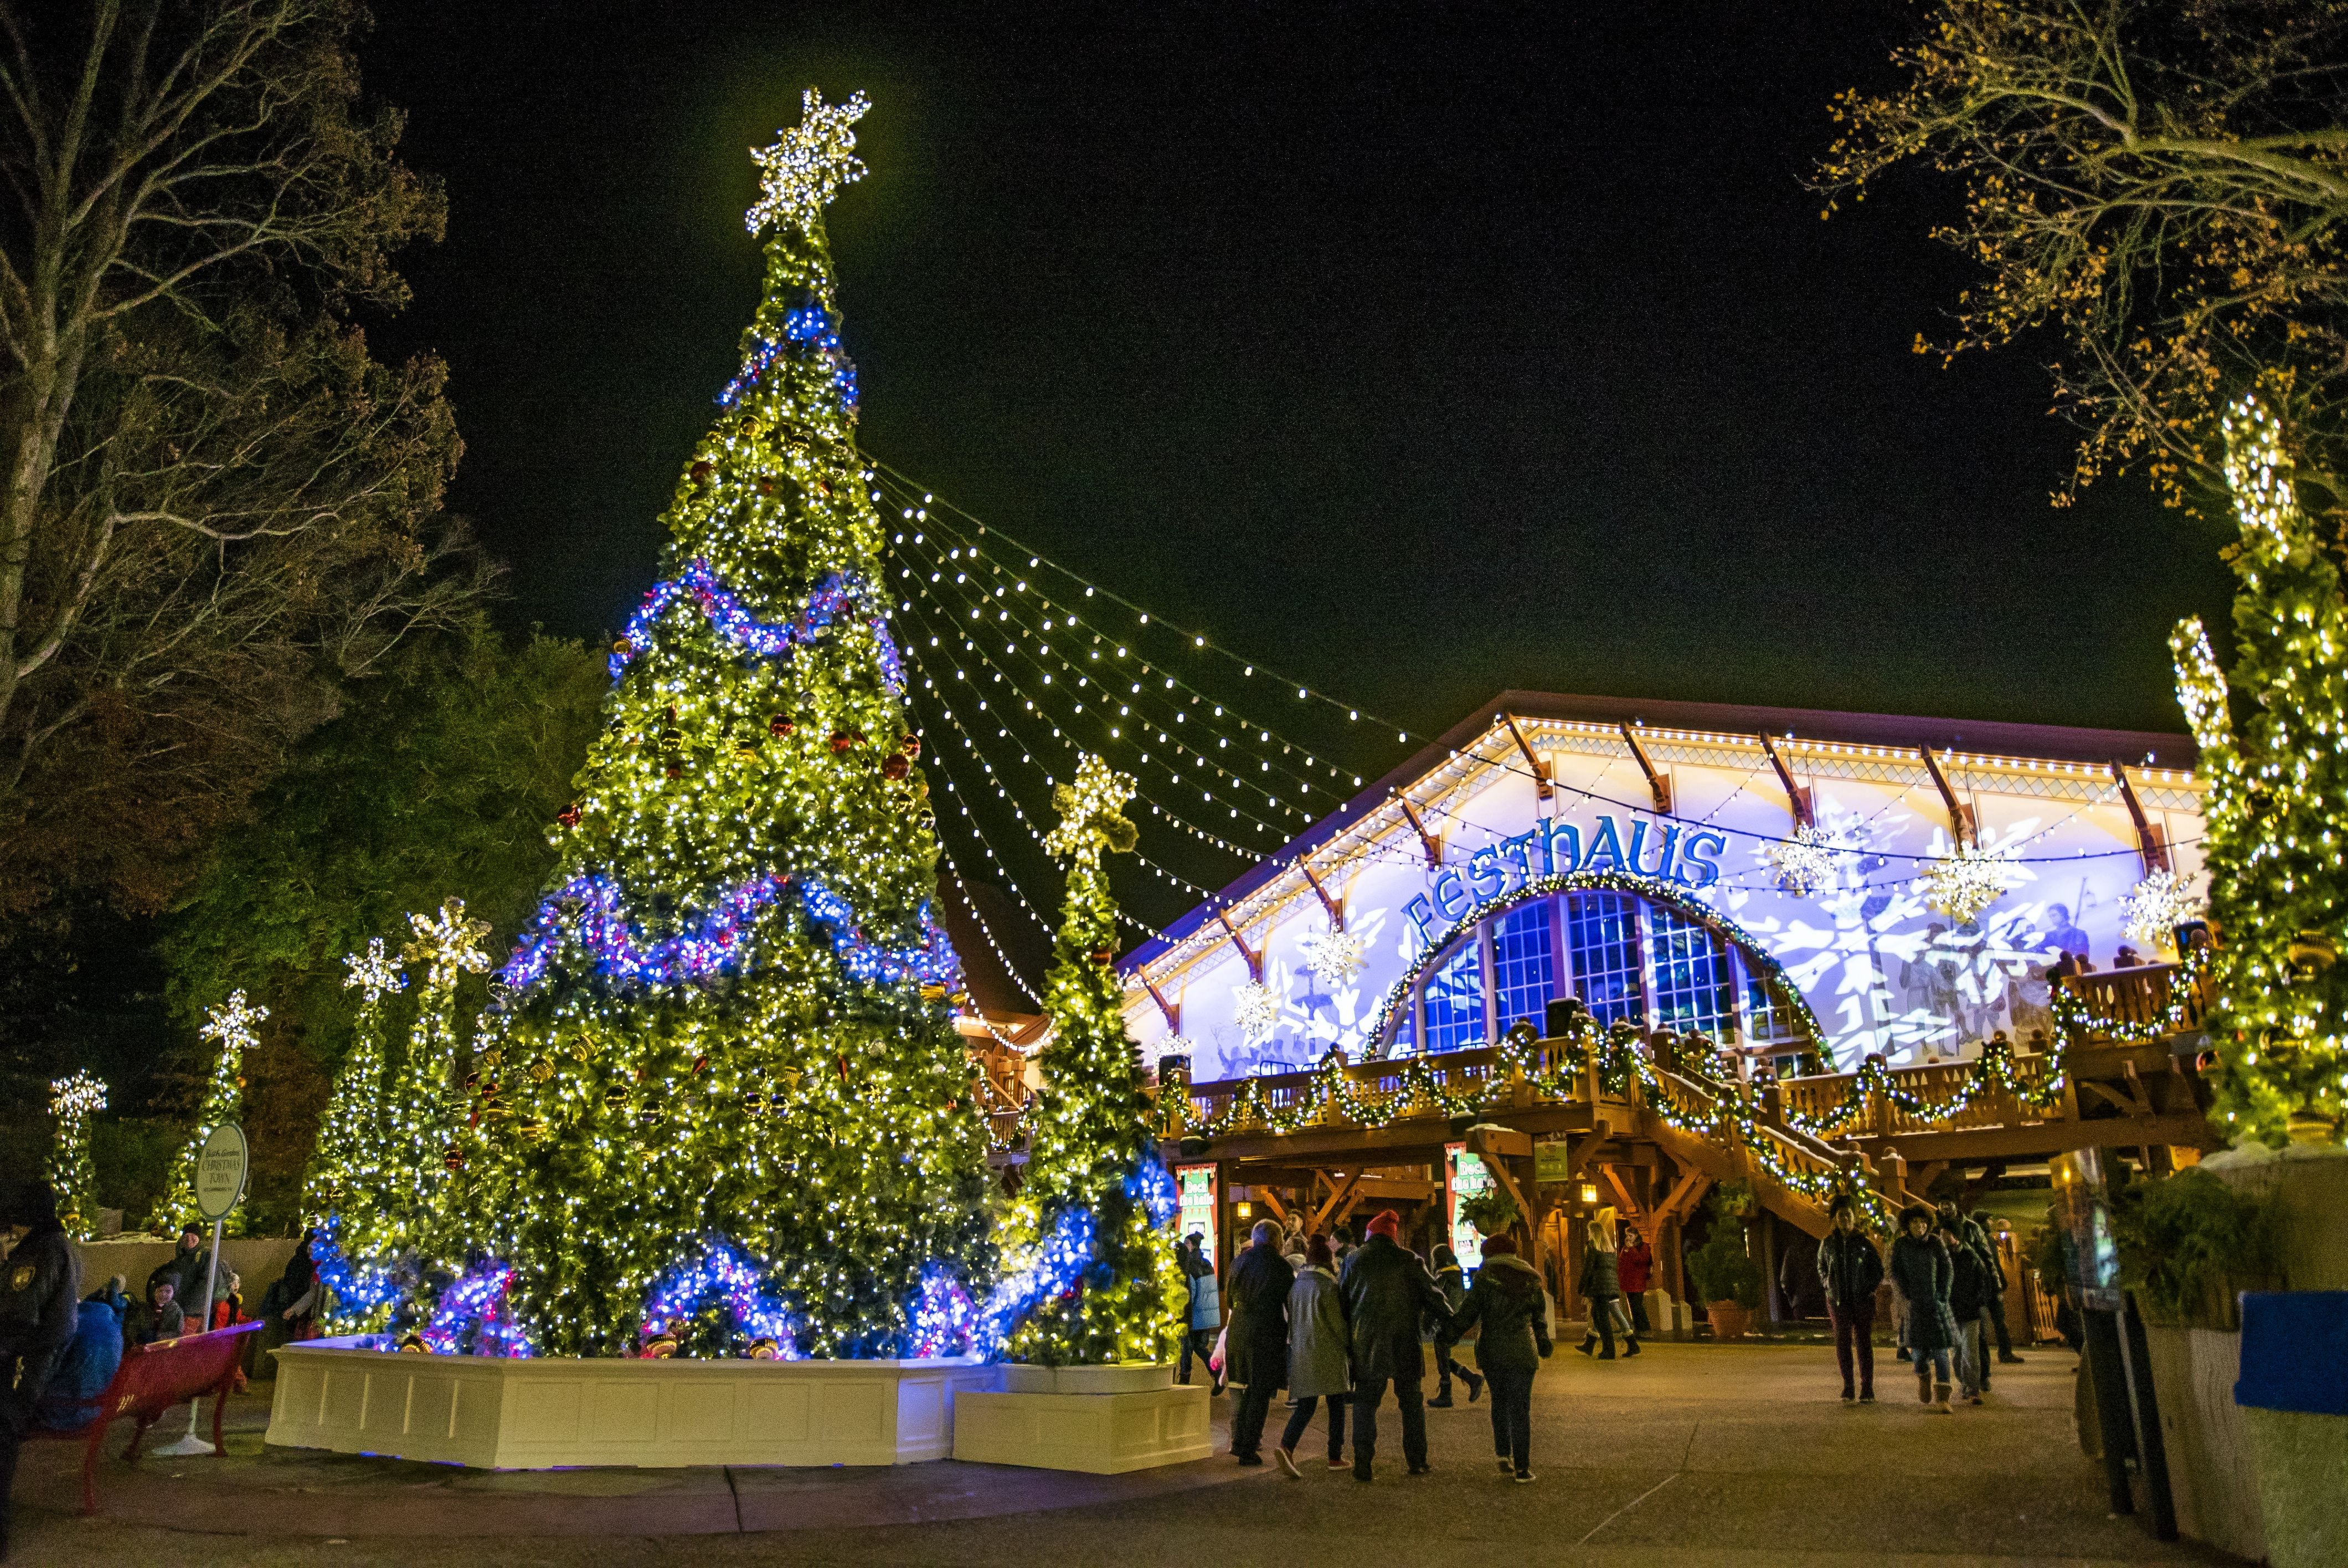 What Rides Are Open At Busch Gardens During Christmas Town